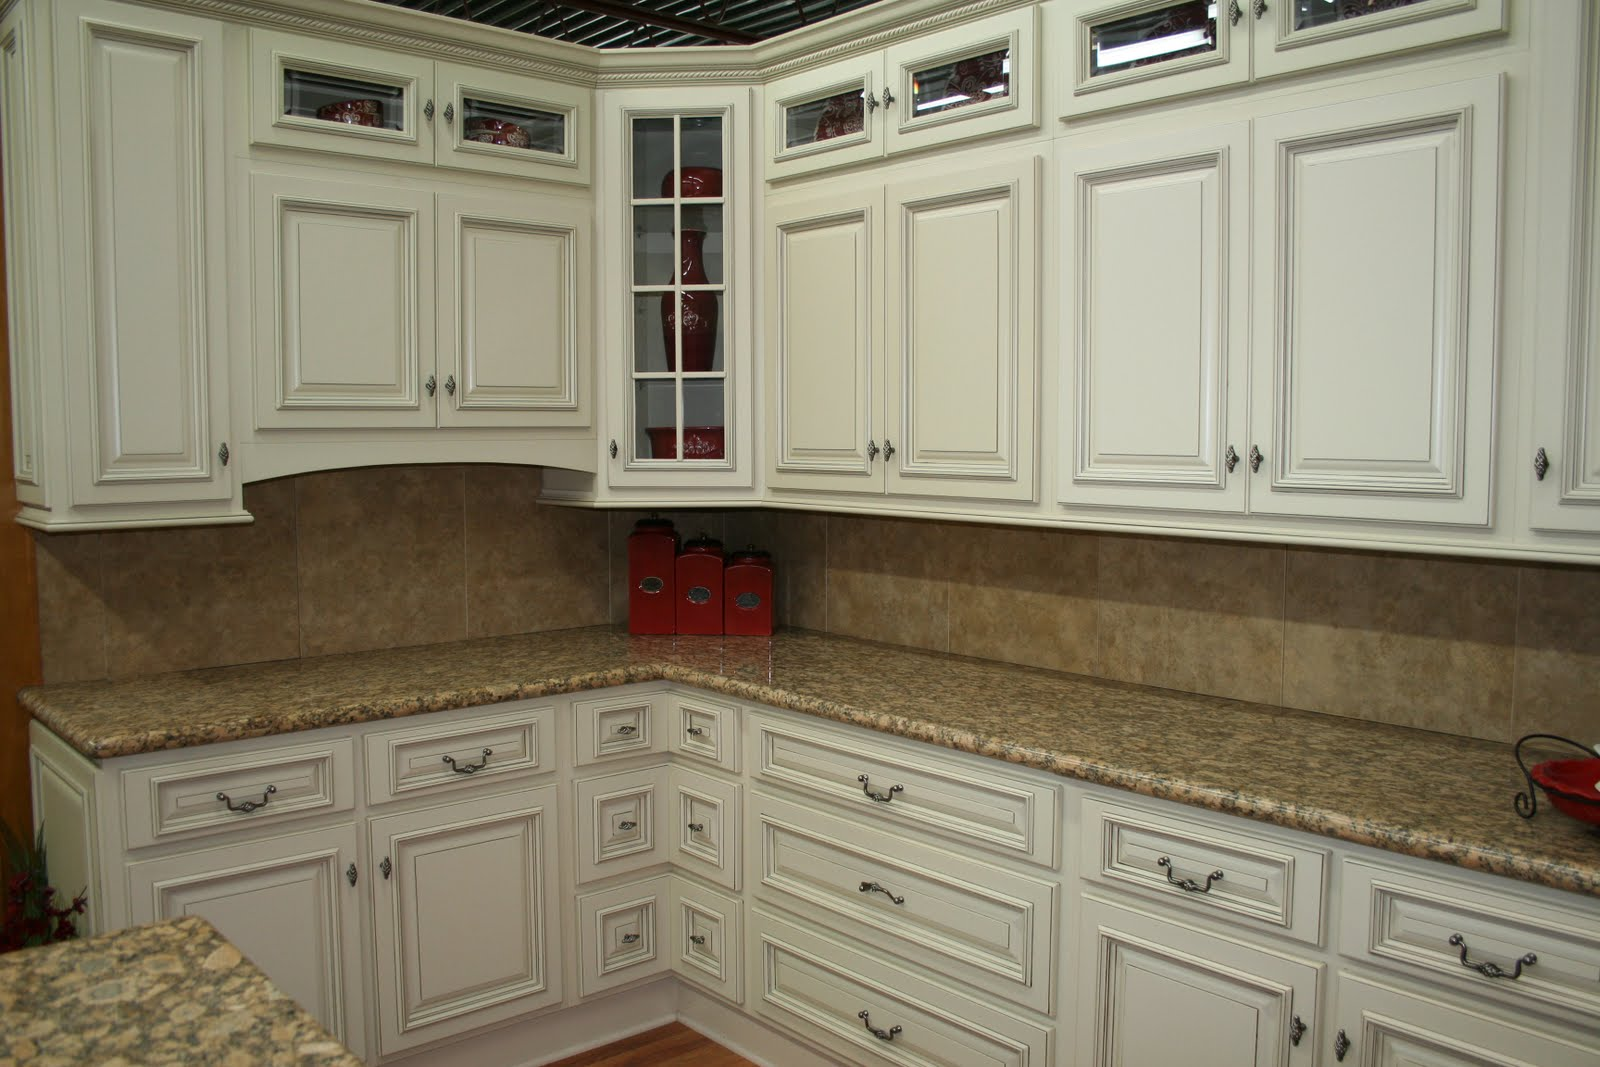 diy refacing kitchen cabinets ideas home design ideas diy refacing kitchen cabinets ideas kitchen cabinets ideas kitchen cabinet refacing ideas white